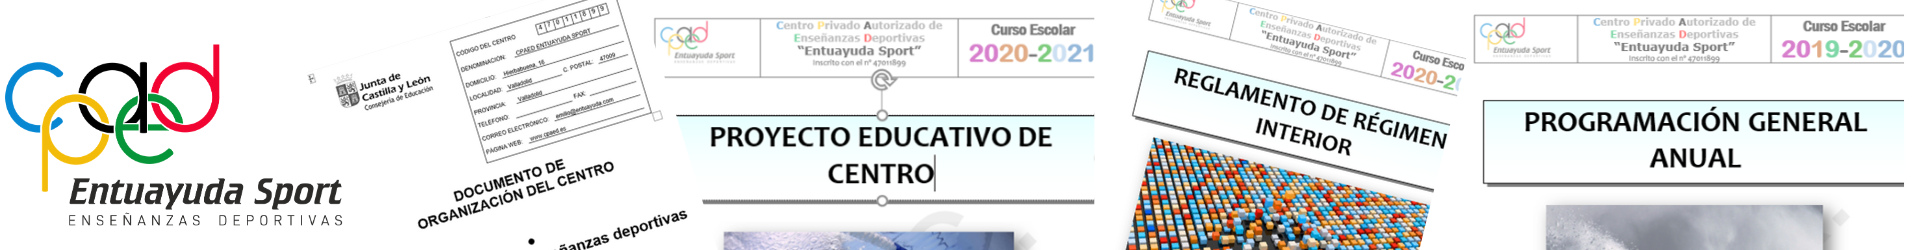 Documentacion educativa